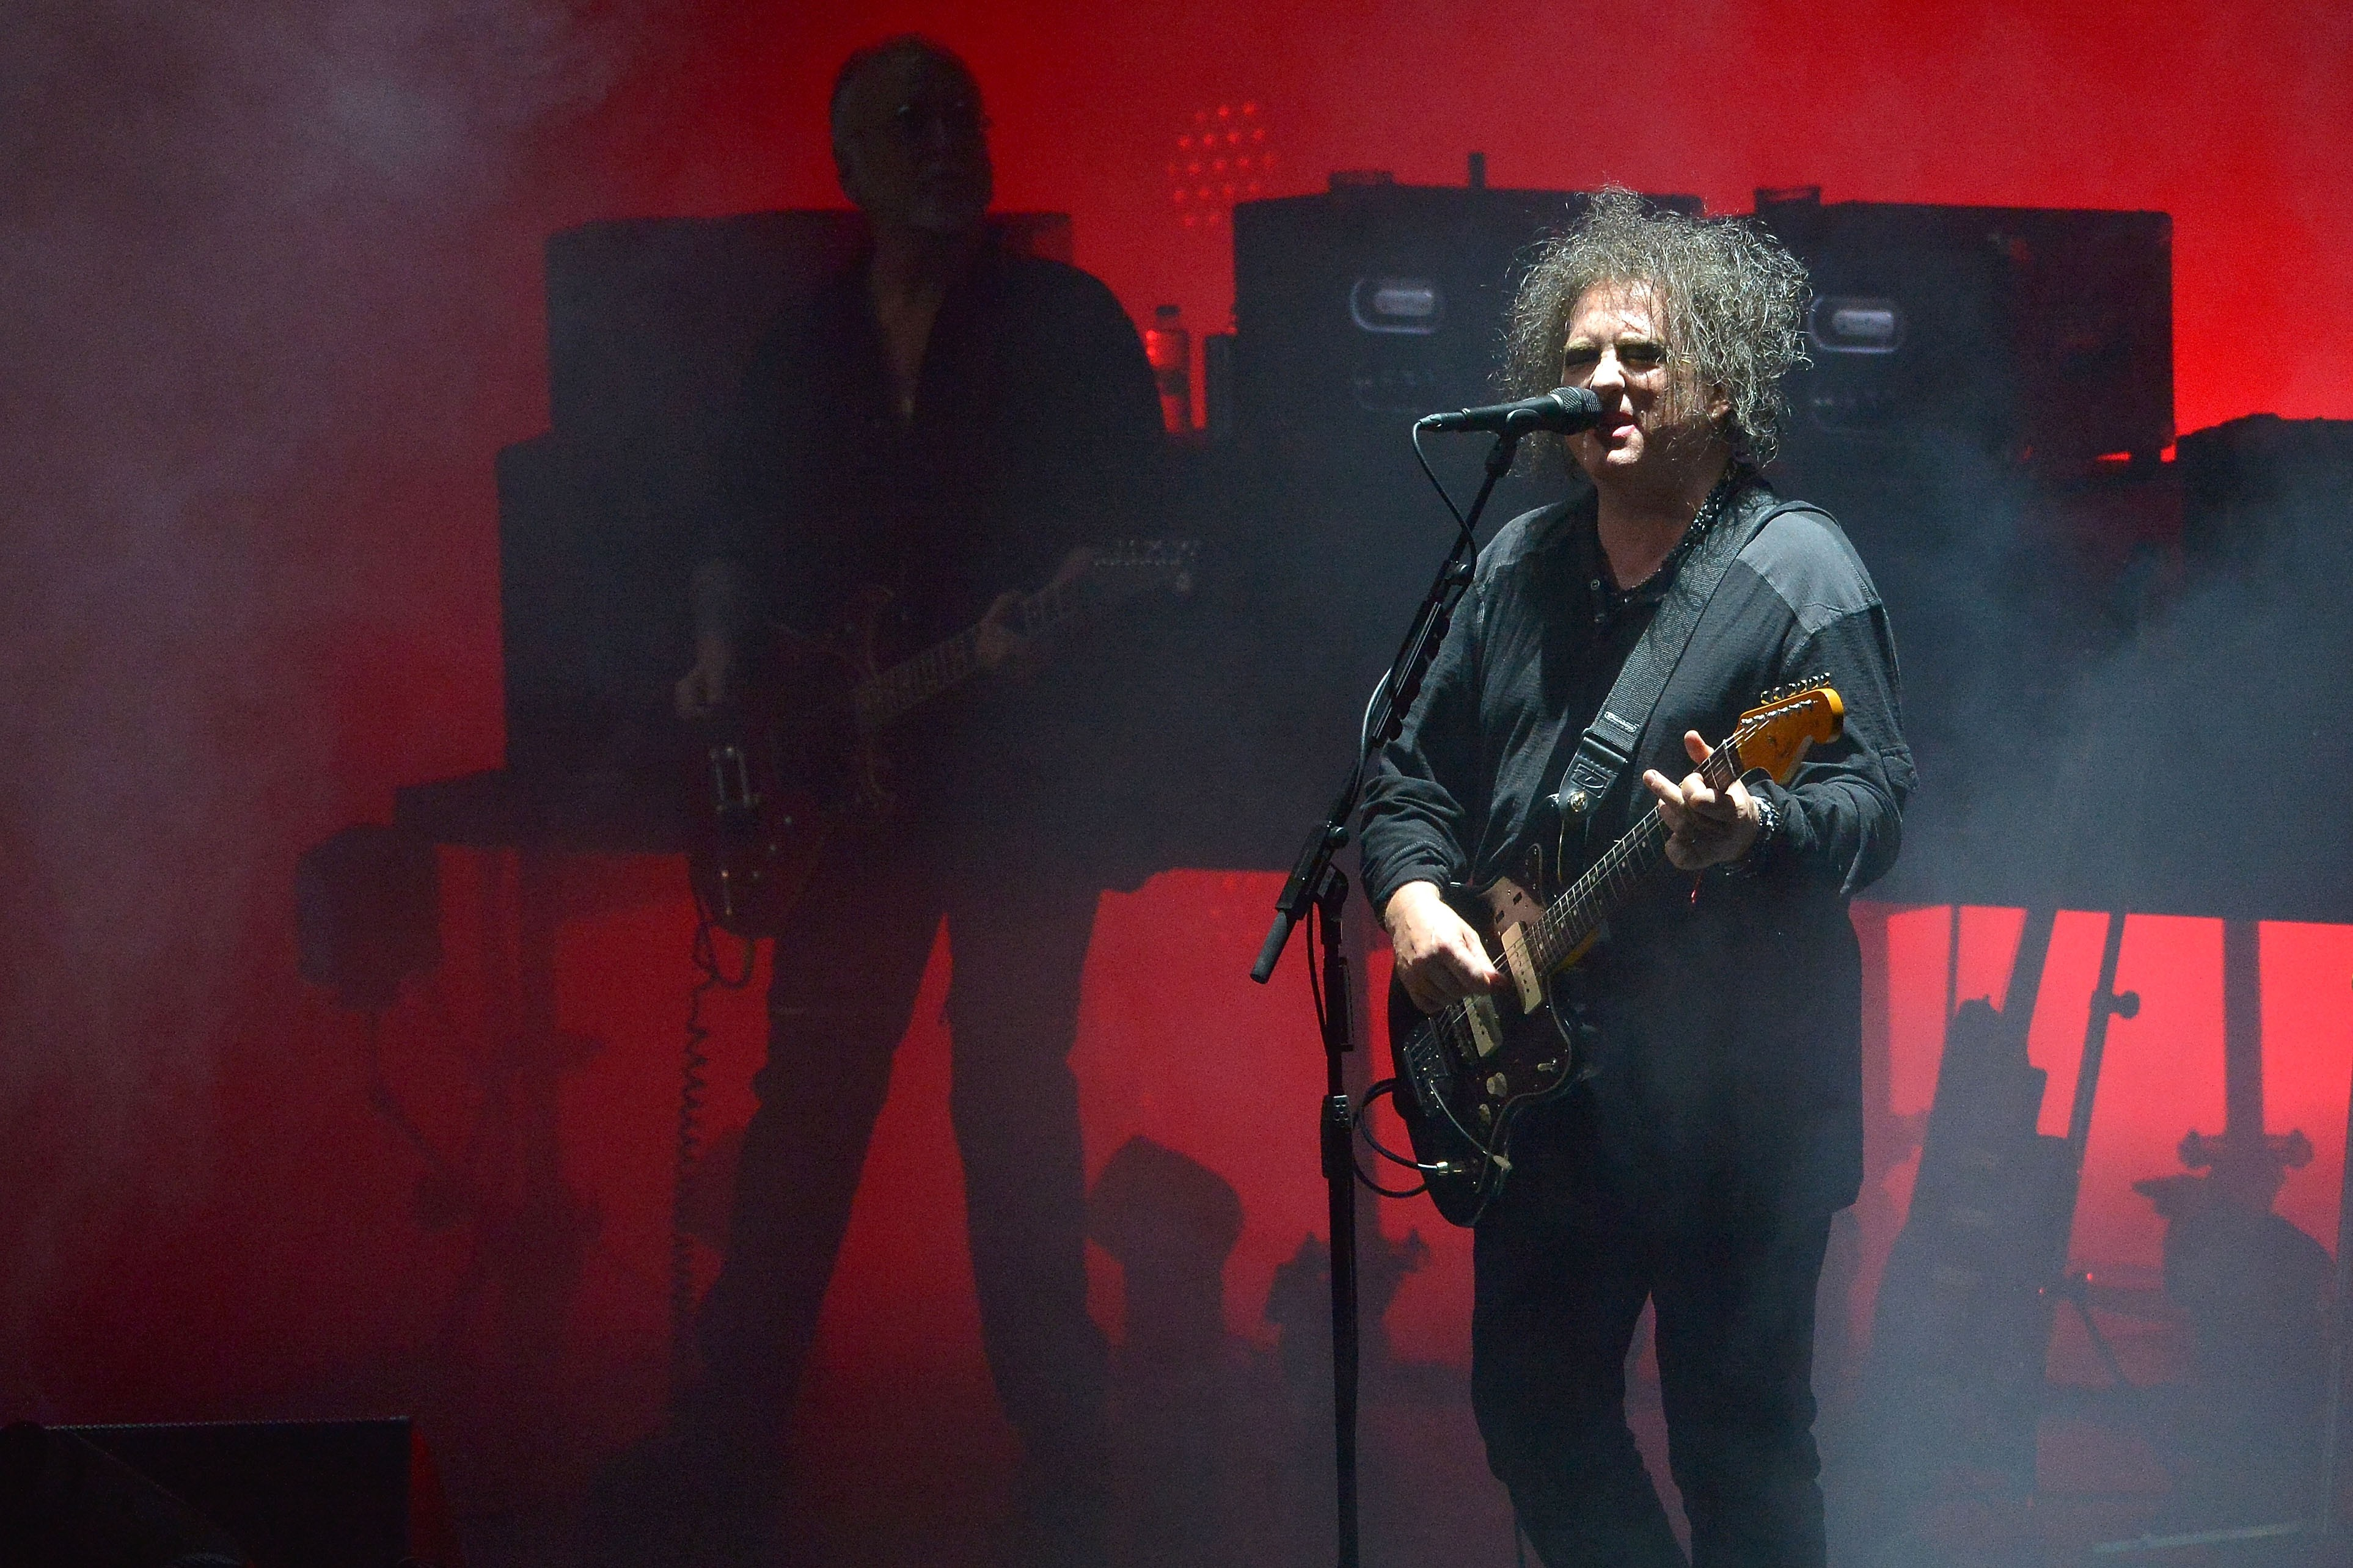 the-cure-play-disintegration-b-sides-live-for-the-first-time-watch